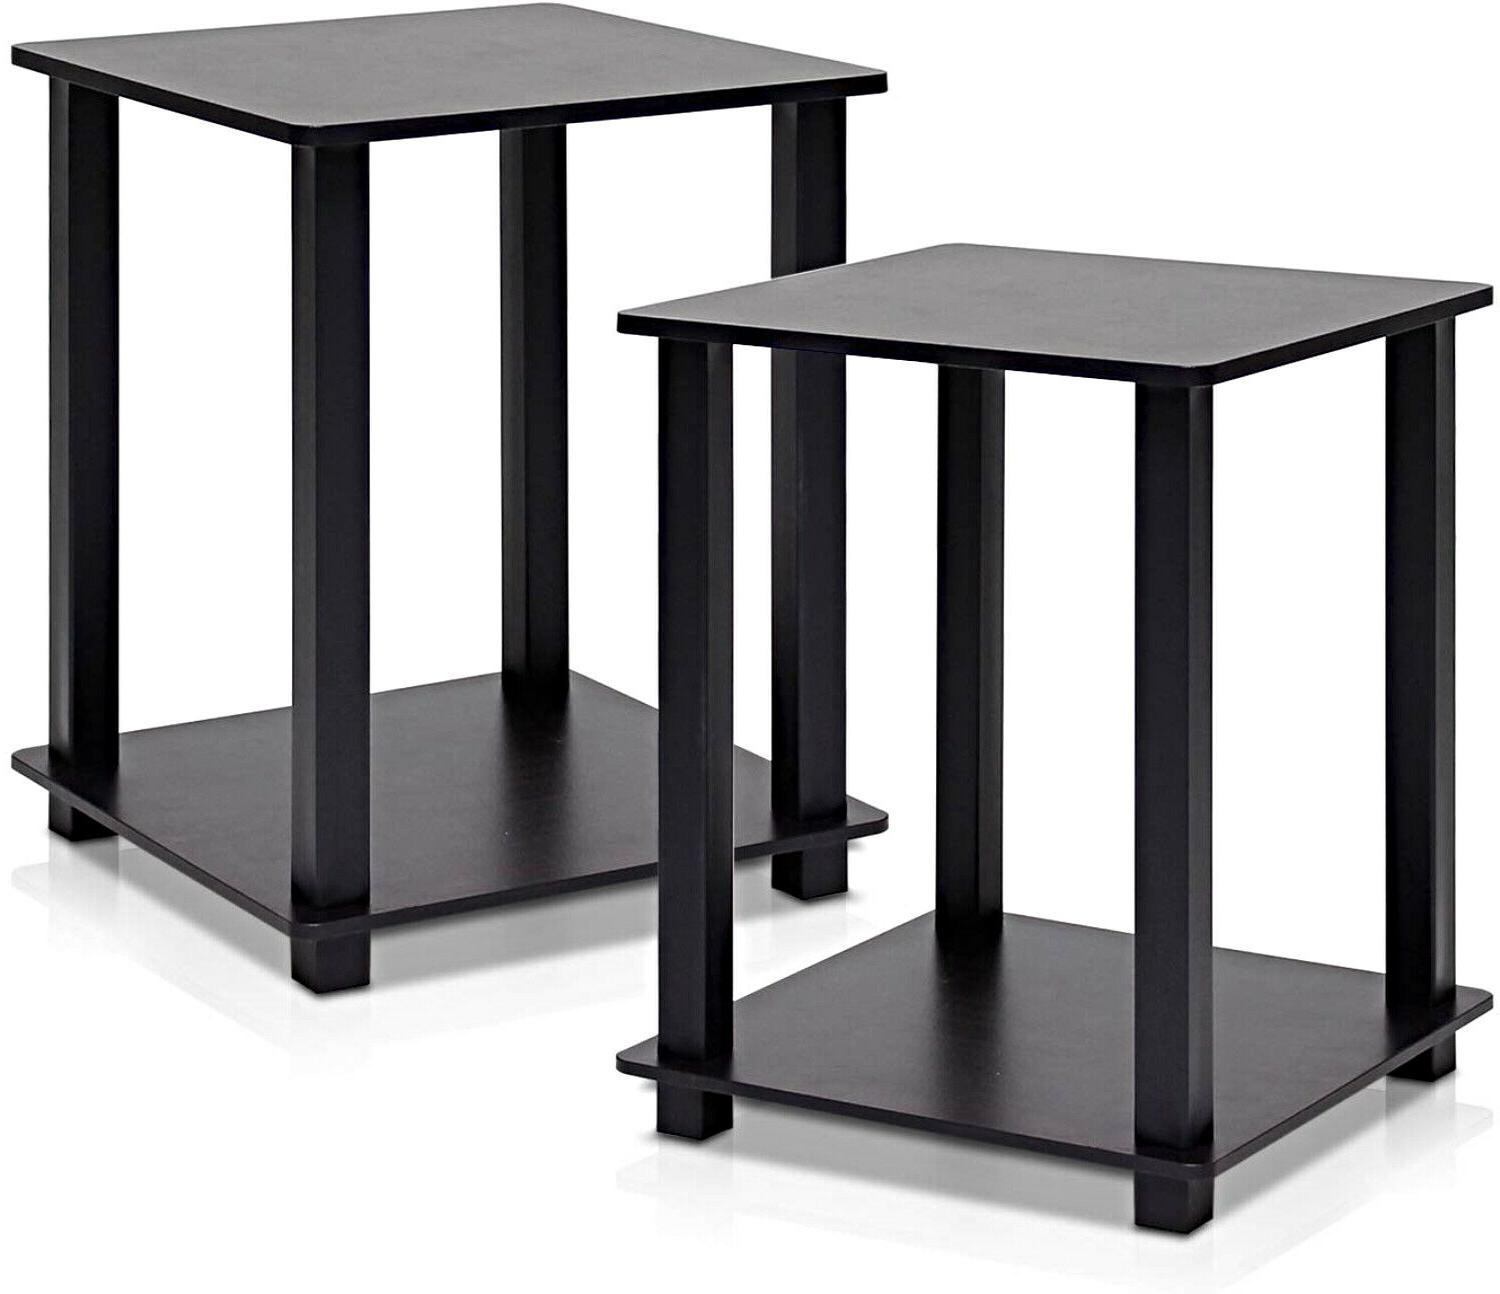 Wooden Table of 2 Stand Bedroom Living Espresso Black